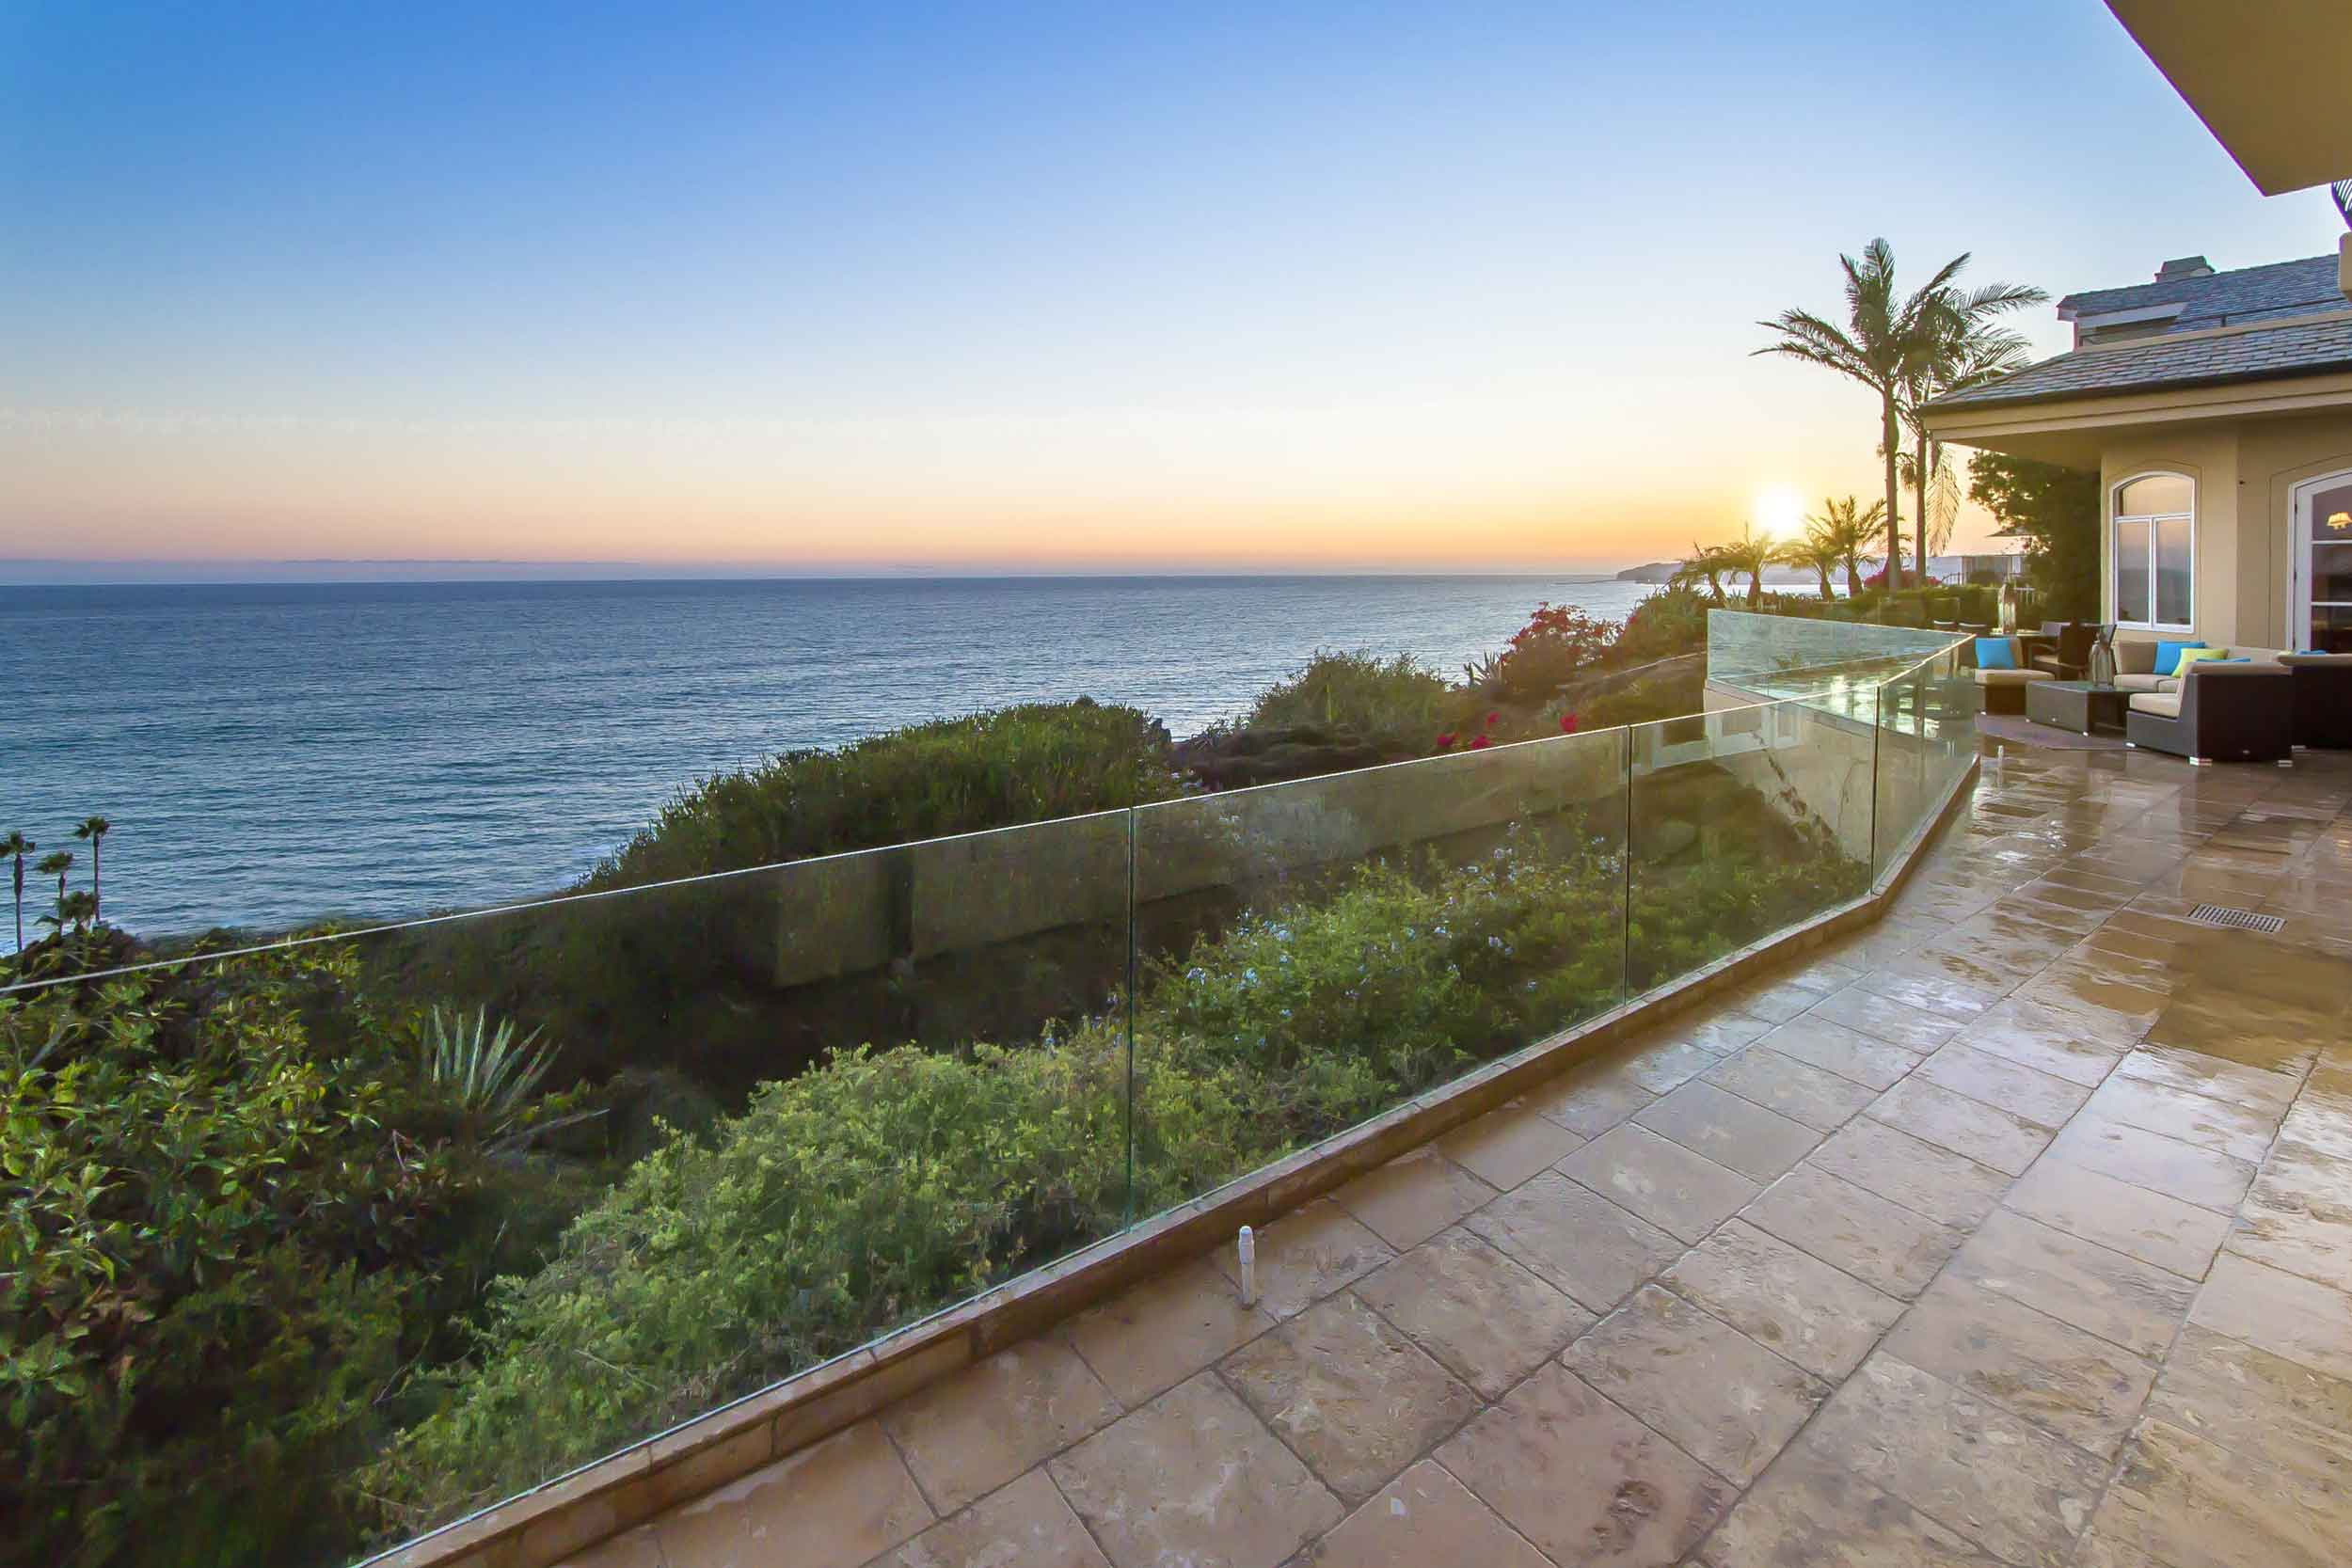 Surfers regard Dana Point as aficionados regard the Getty or the Louvre: Camino Capistrano is an architectural masterpiece.